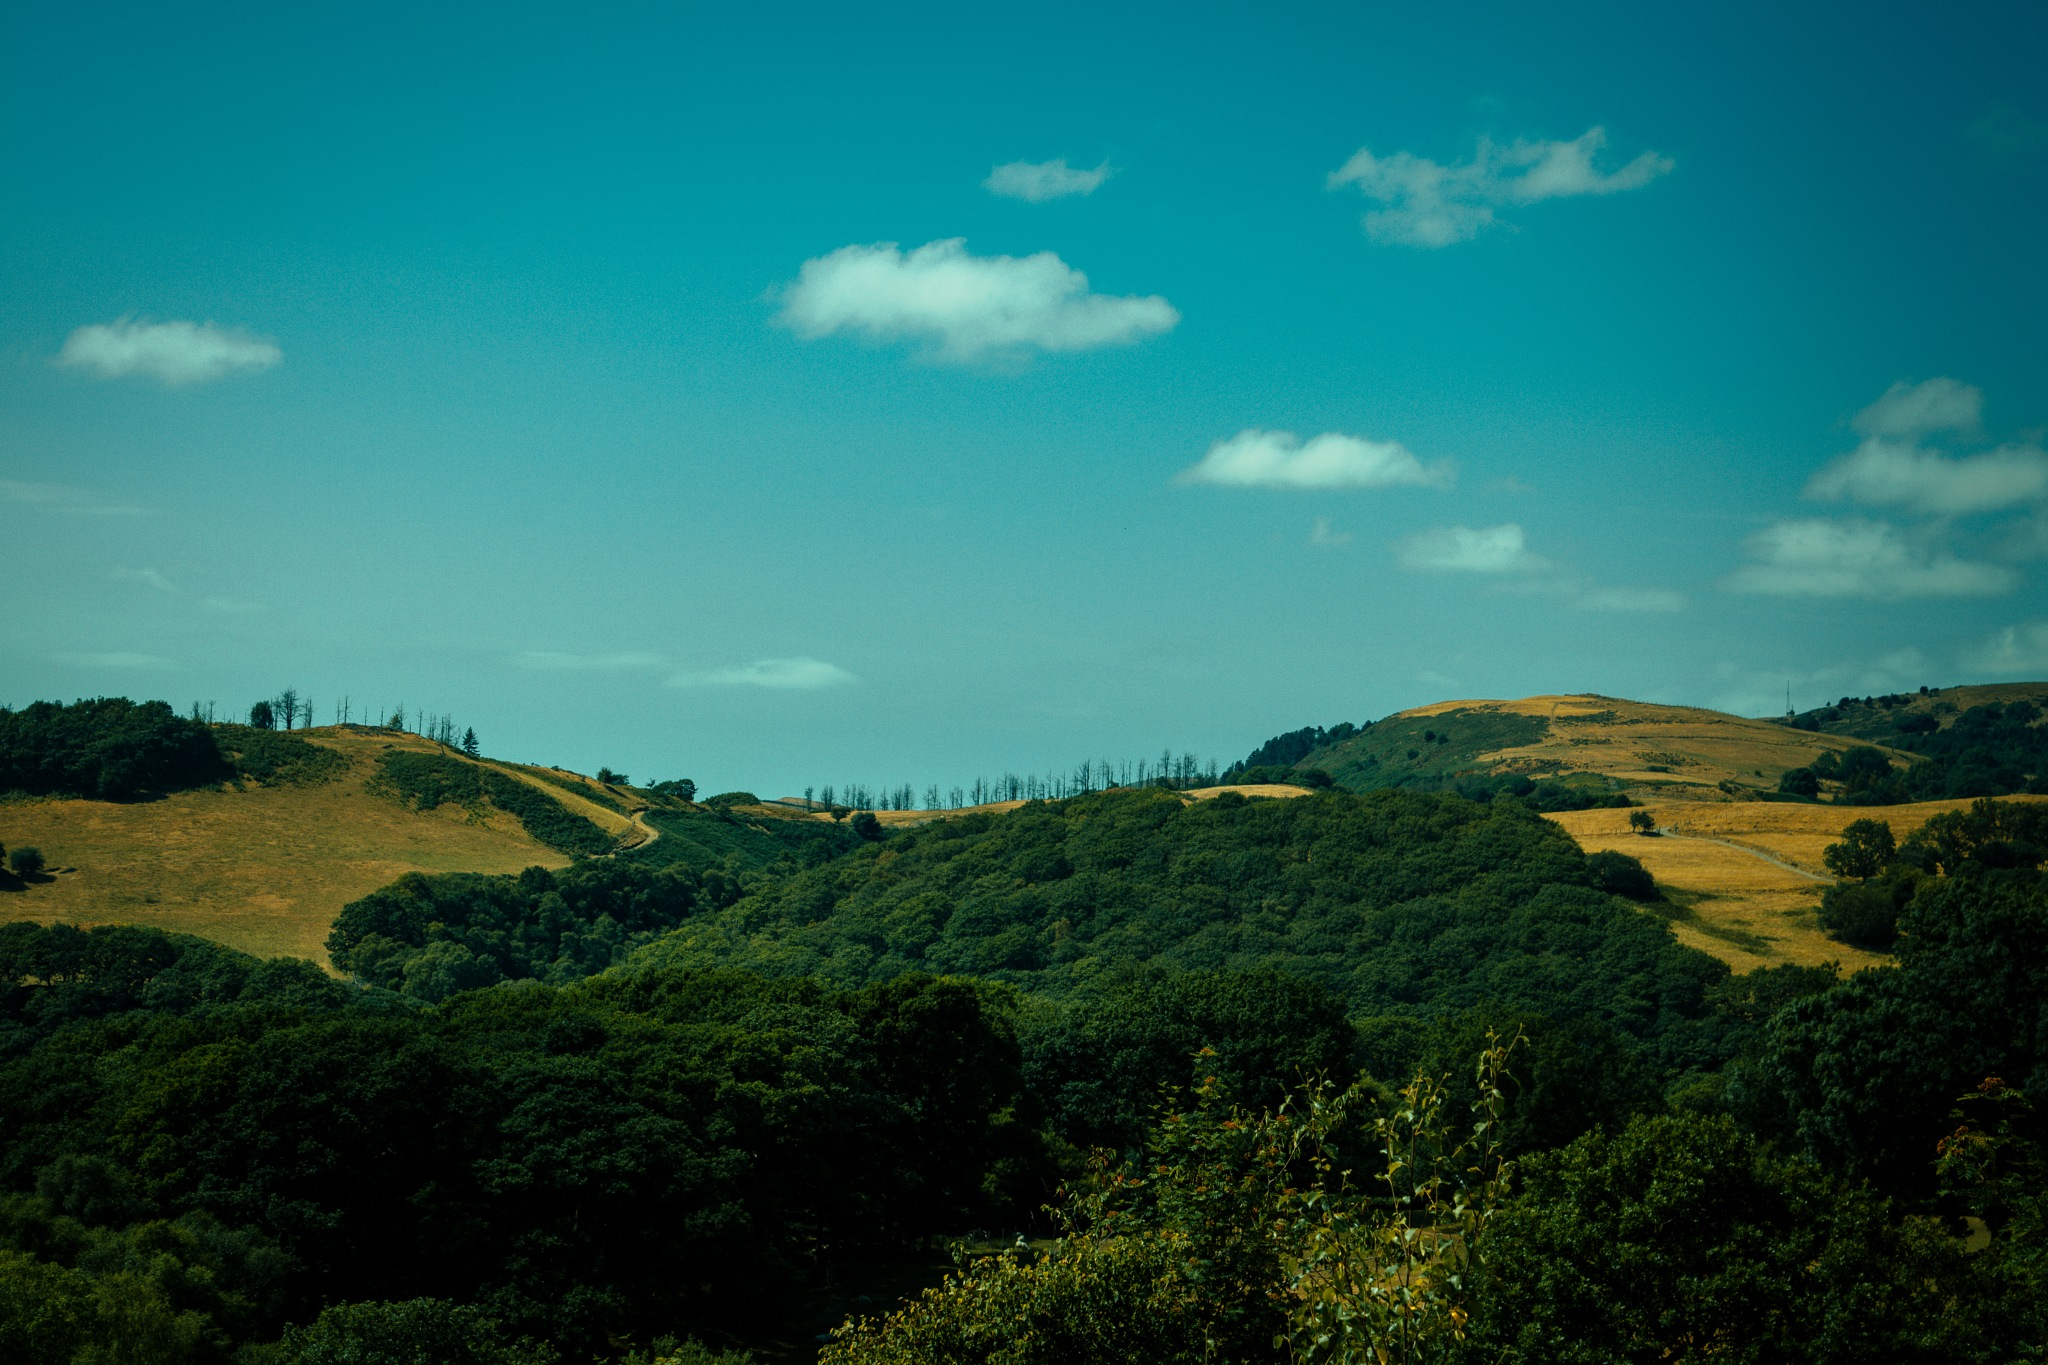 Rolling Hills by thomasormerodphotography